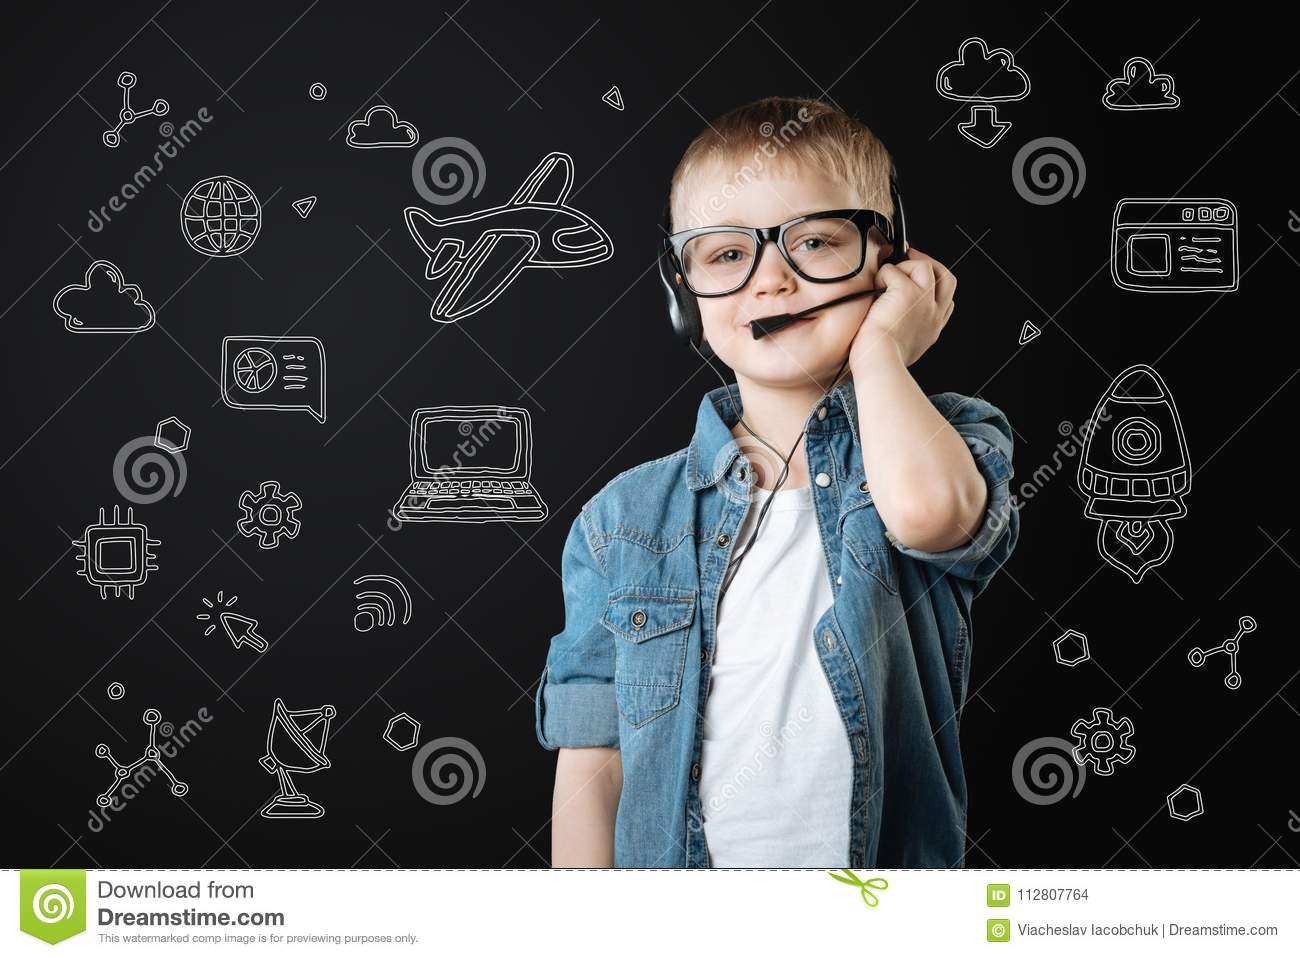 How to become smart and confident boy